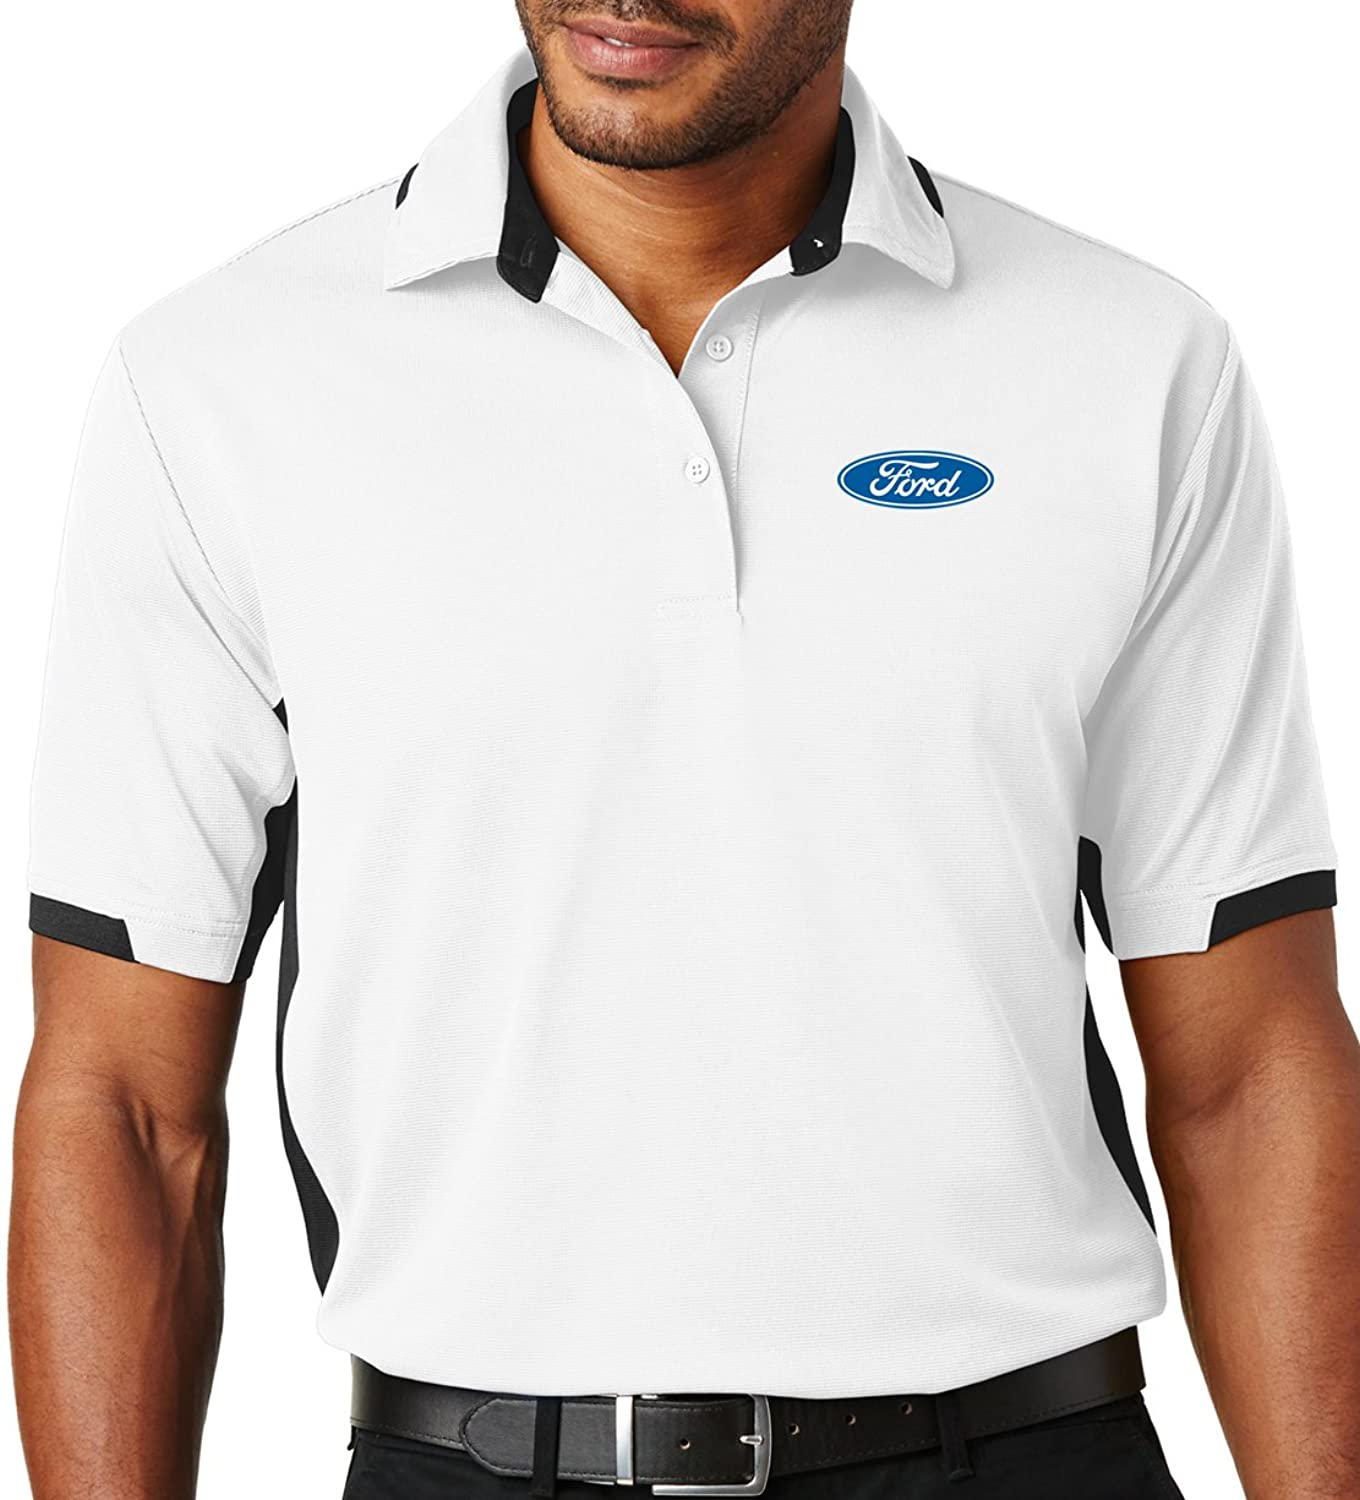 8cd06c7a1cf784 Features an officially licensed Ford Oval Emblem 100% Snag-resistant  polyester 3-button placket. Set-in, open hem sleeves with contrasting rib  knit detail